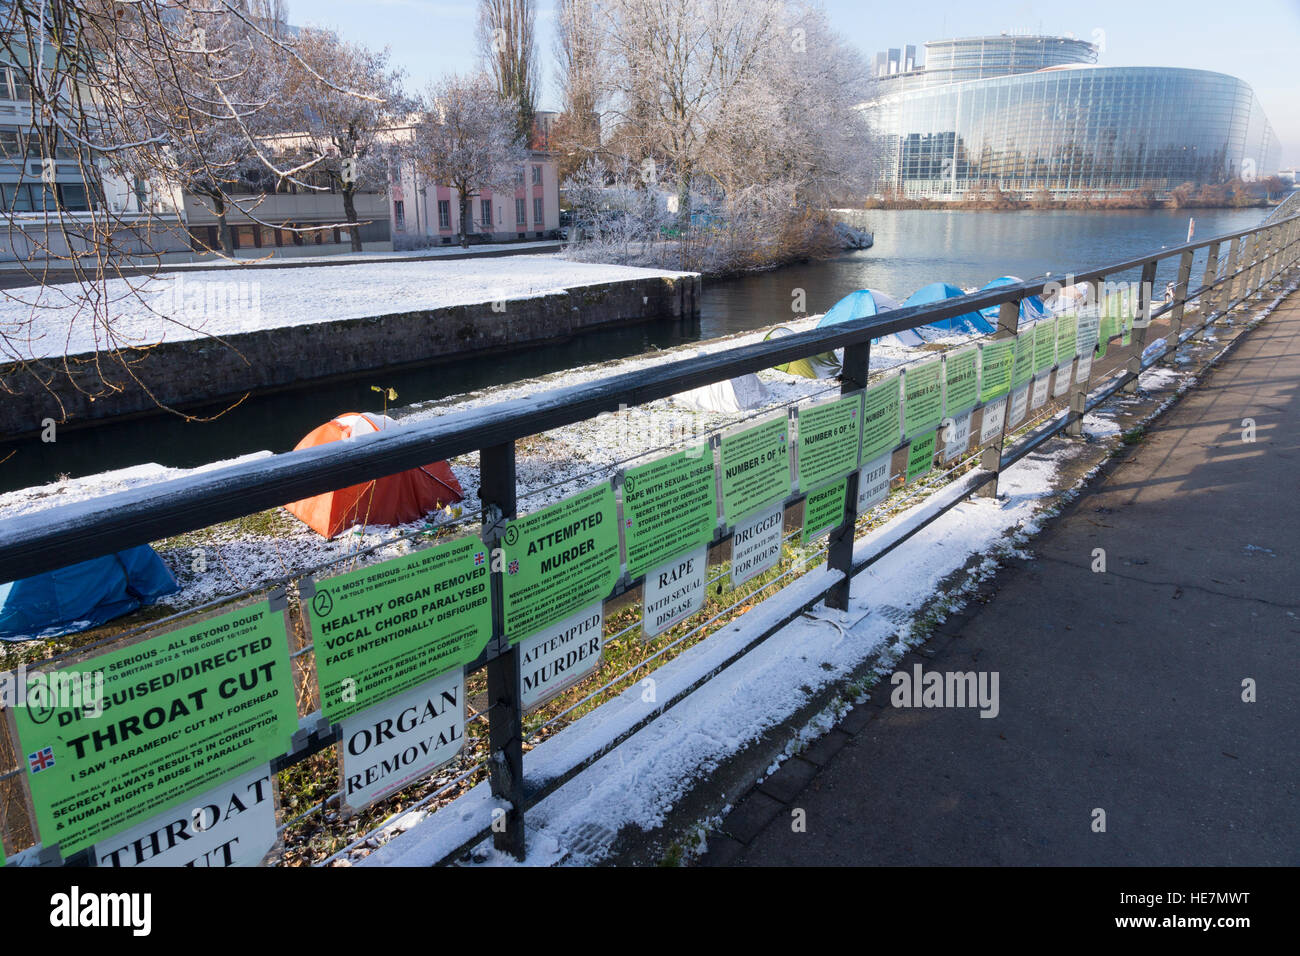 Protesters' signs and tents opposite the European Court of Human Rights and near the European Parliament Building - Stock Image